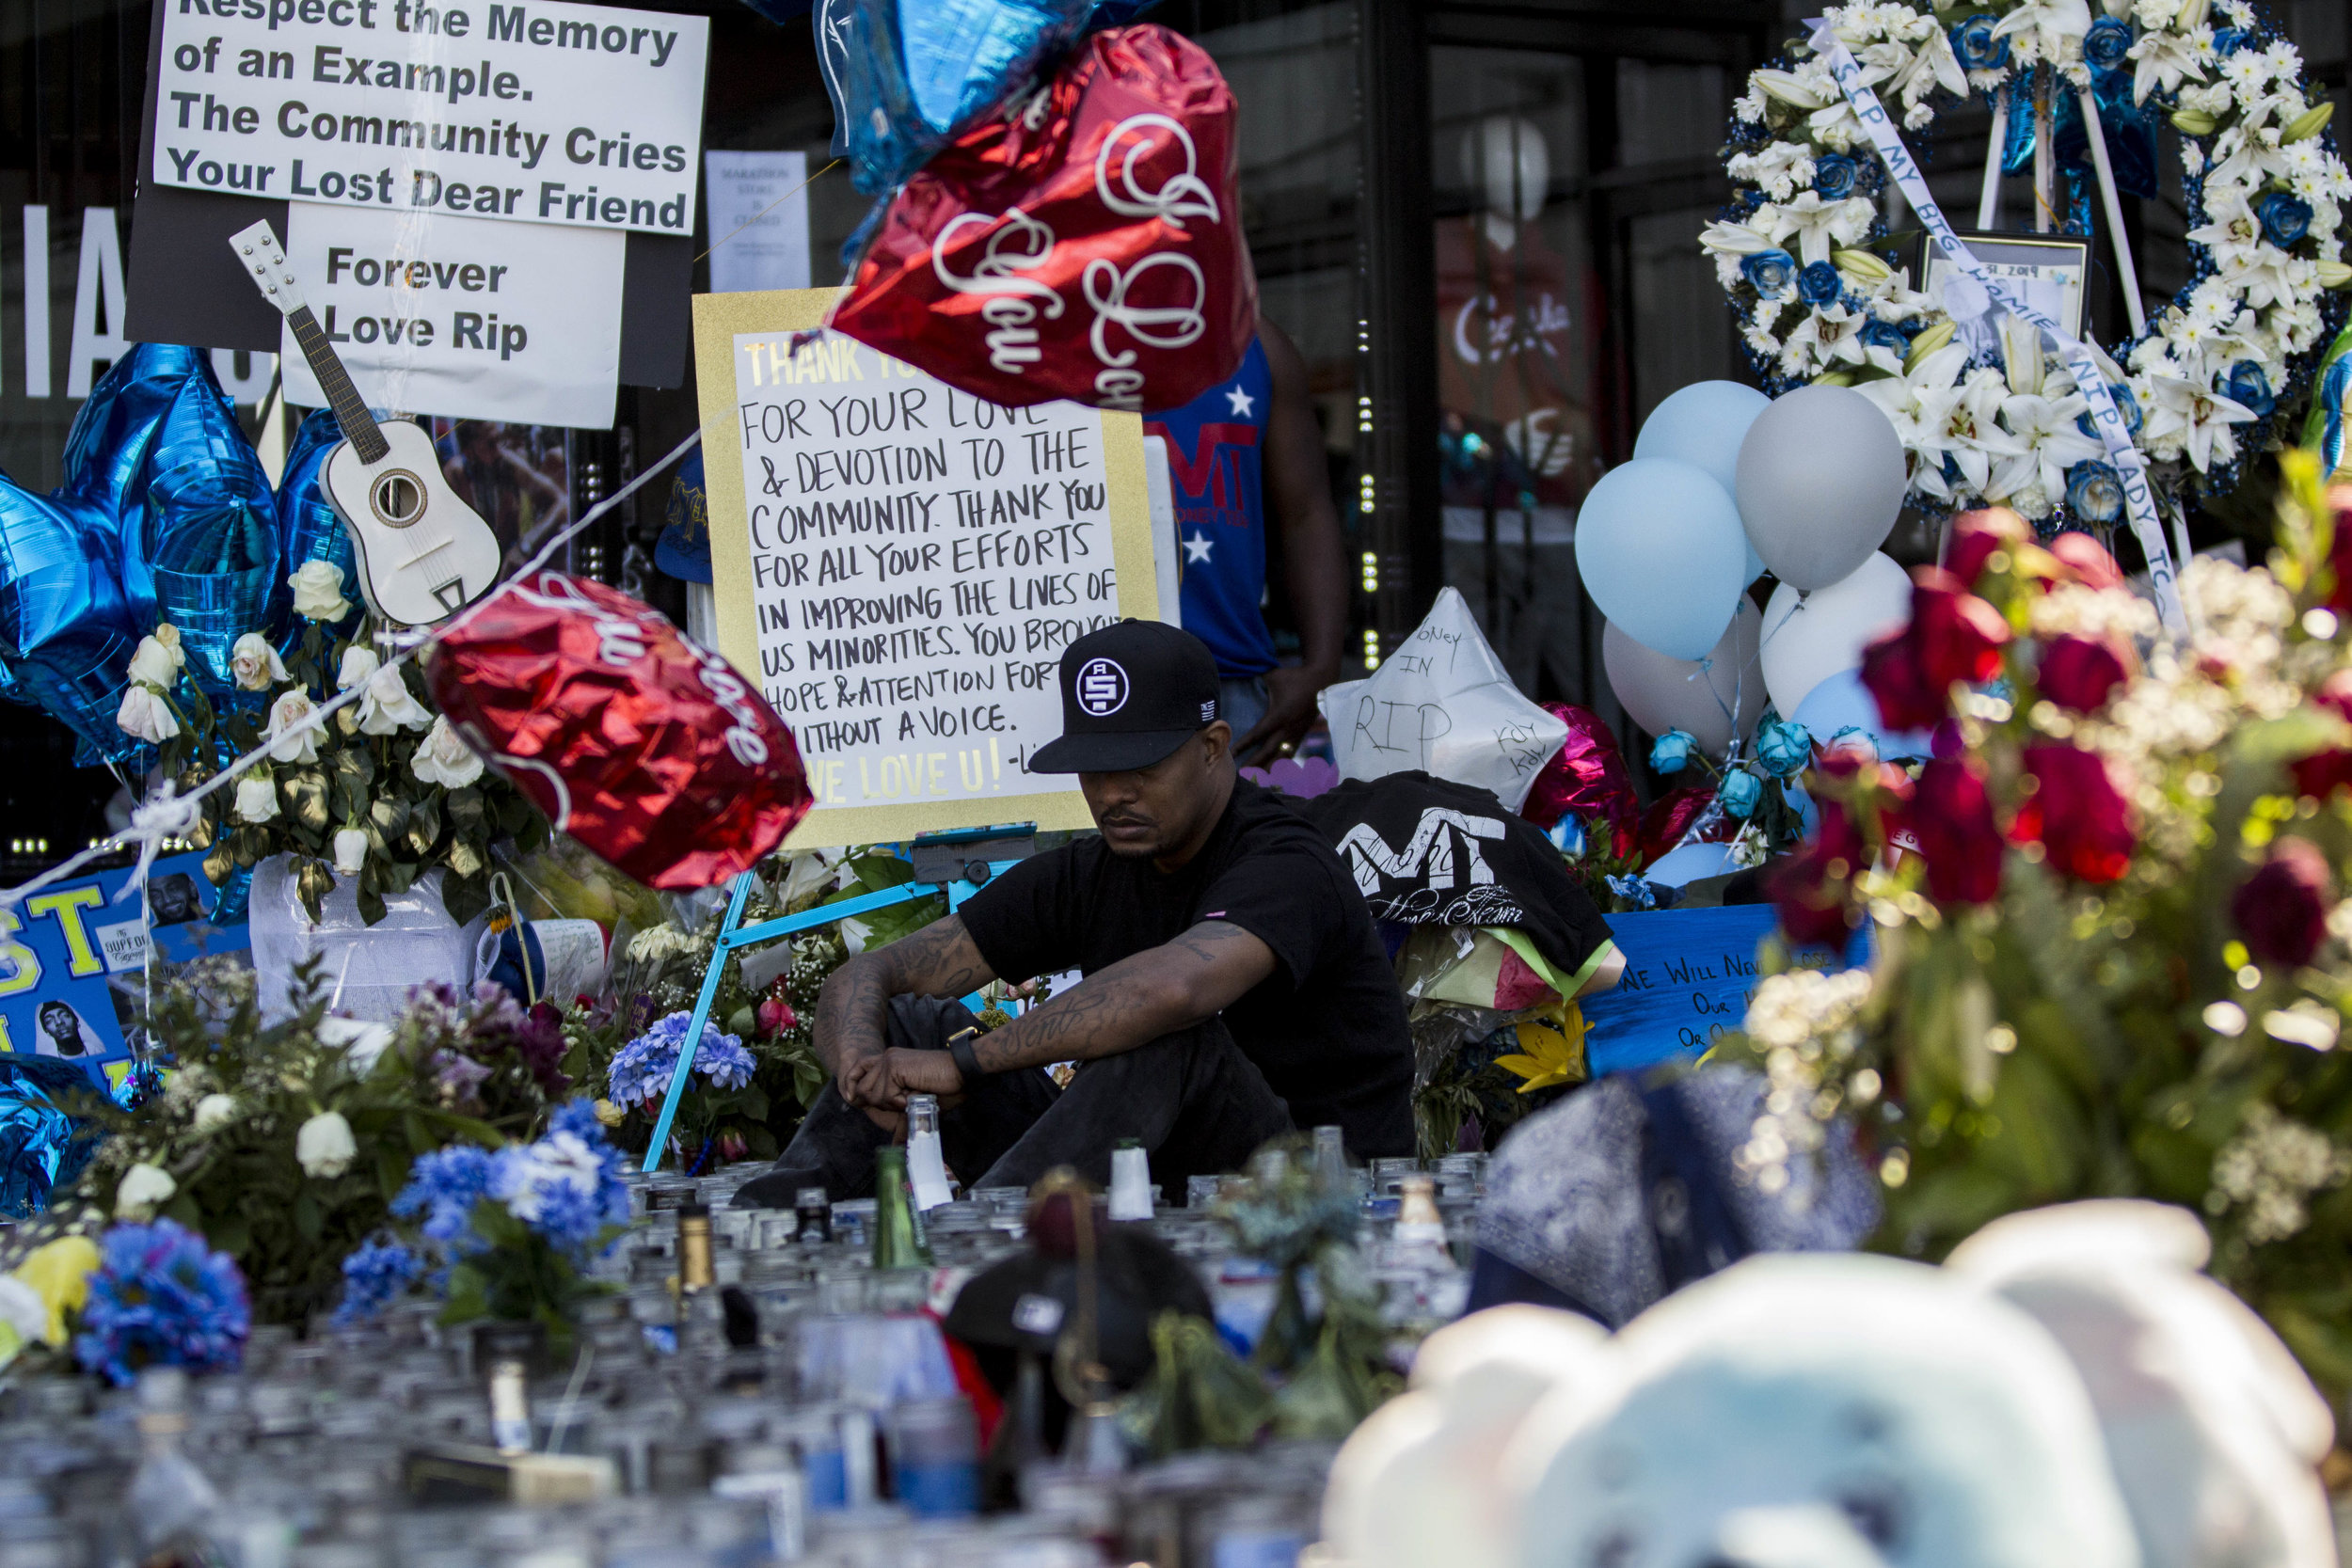 A man pays his respects to Nipsey Hussle at the makeshift memorial in front of The Marathon Clothing store on Slauson Avenue in Los Angeles, California on Wednesday, April 6, 2019. The 33-year-old rapper was murdered on March 31 in front of The Marathon Clothing store which he owned. (Jose Lopez)